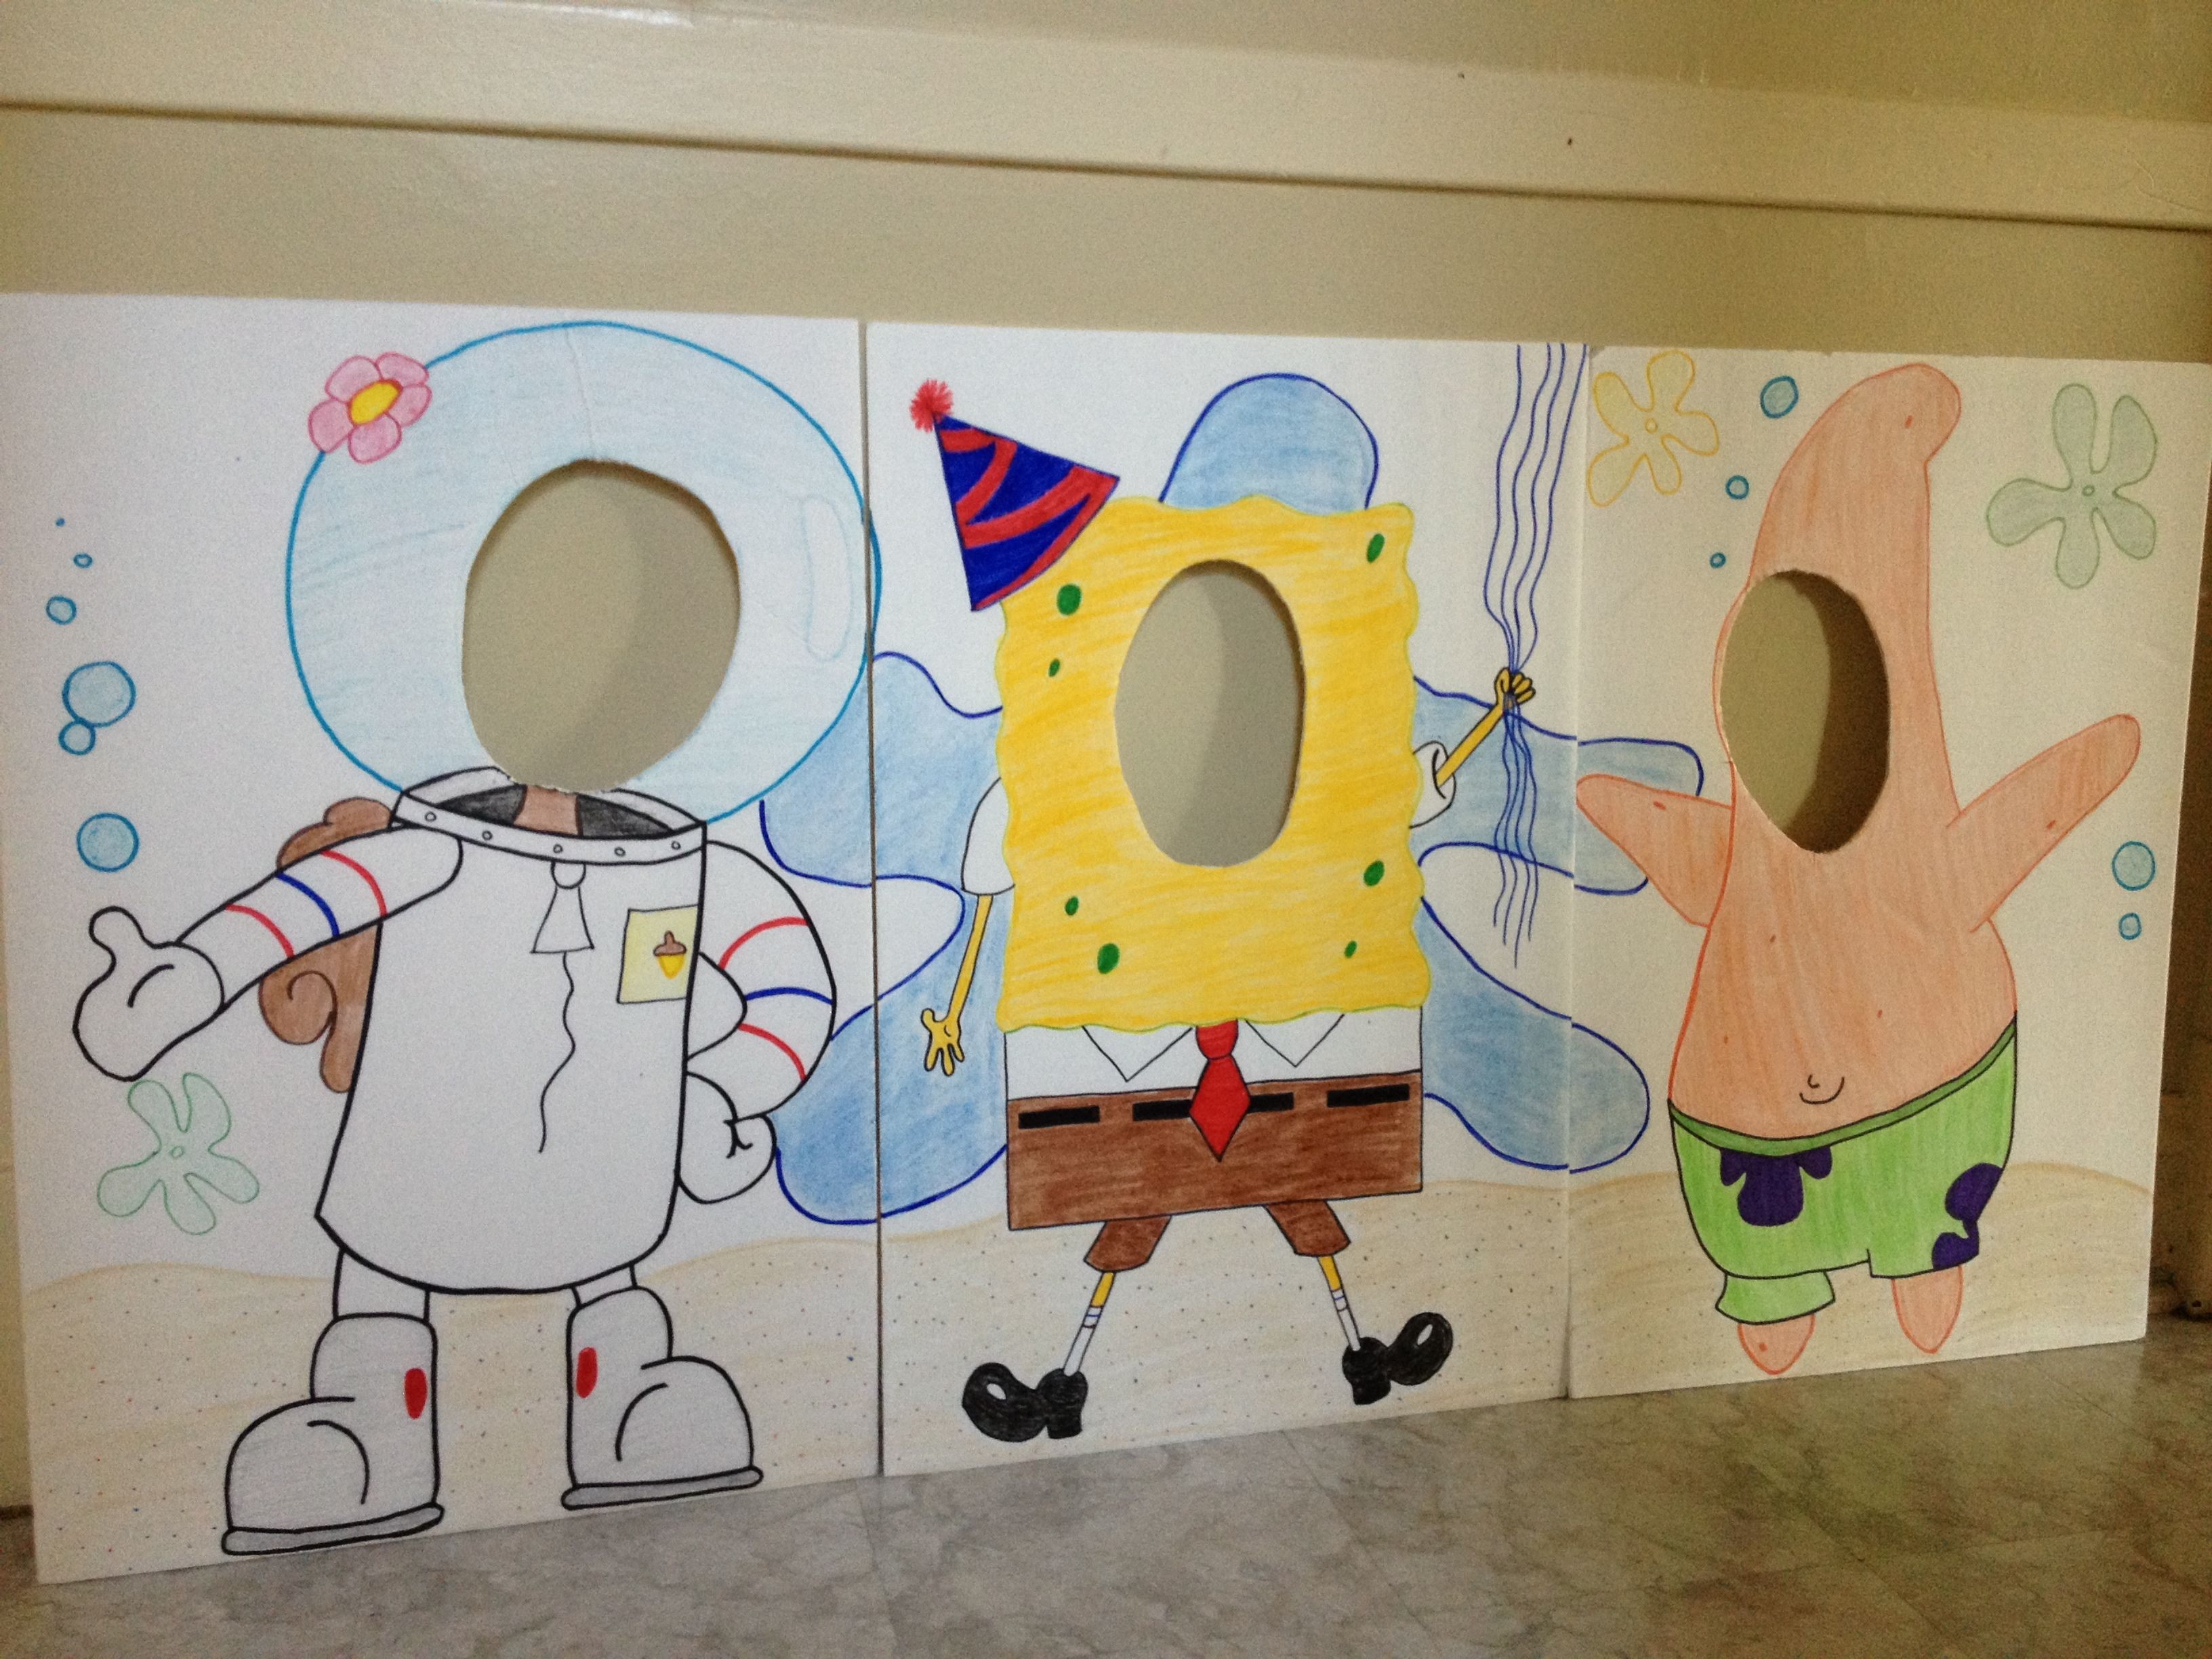 best 25 spongebob spongebob ideas on pinterest spongebob